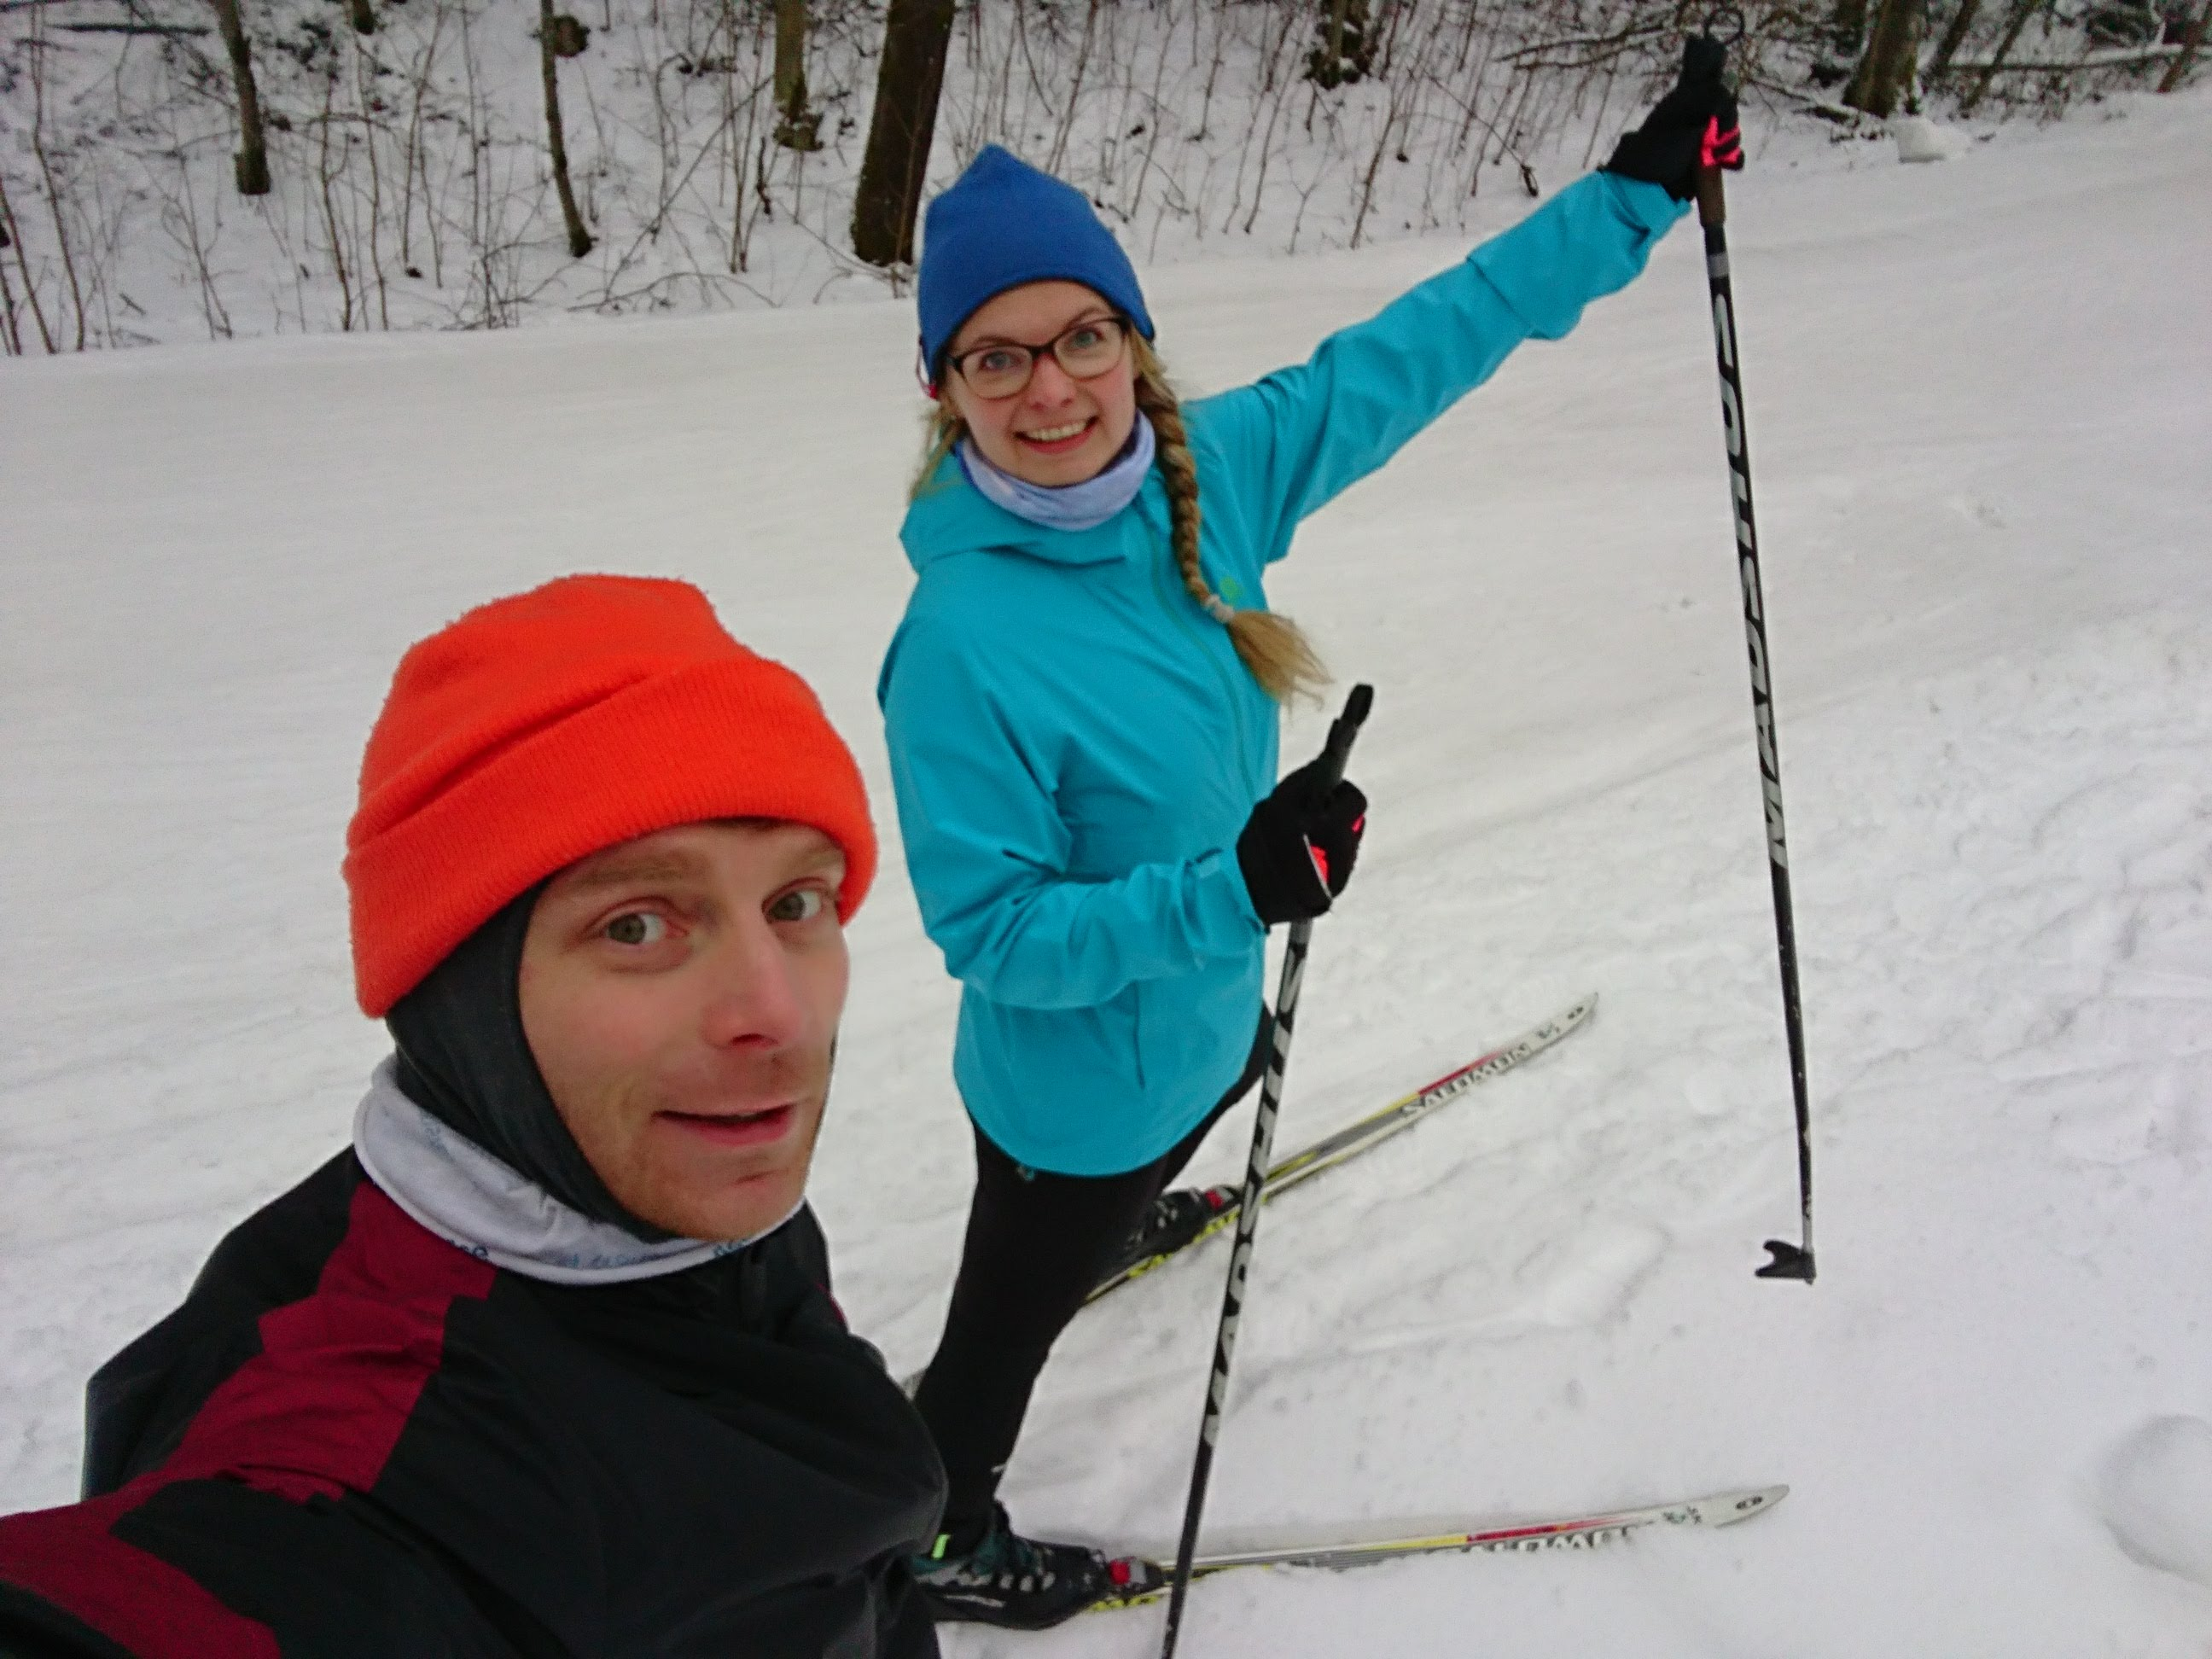 Cross-country skiing is the best with several thin layers.